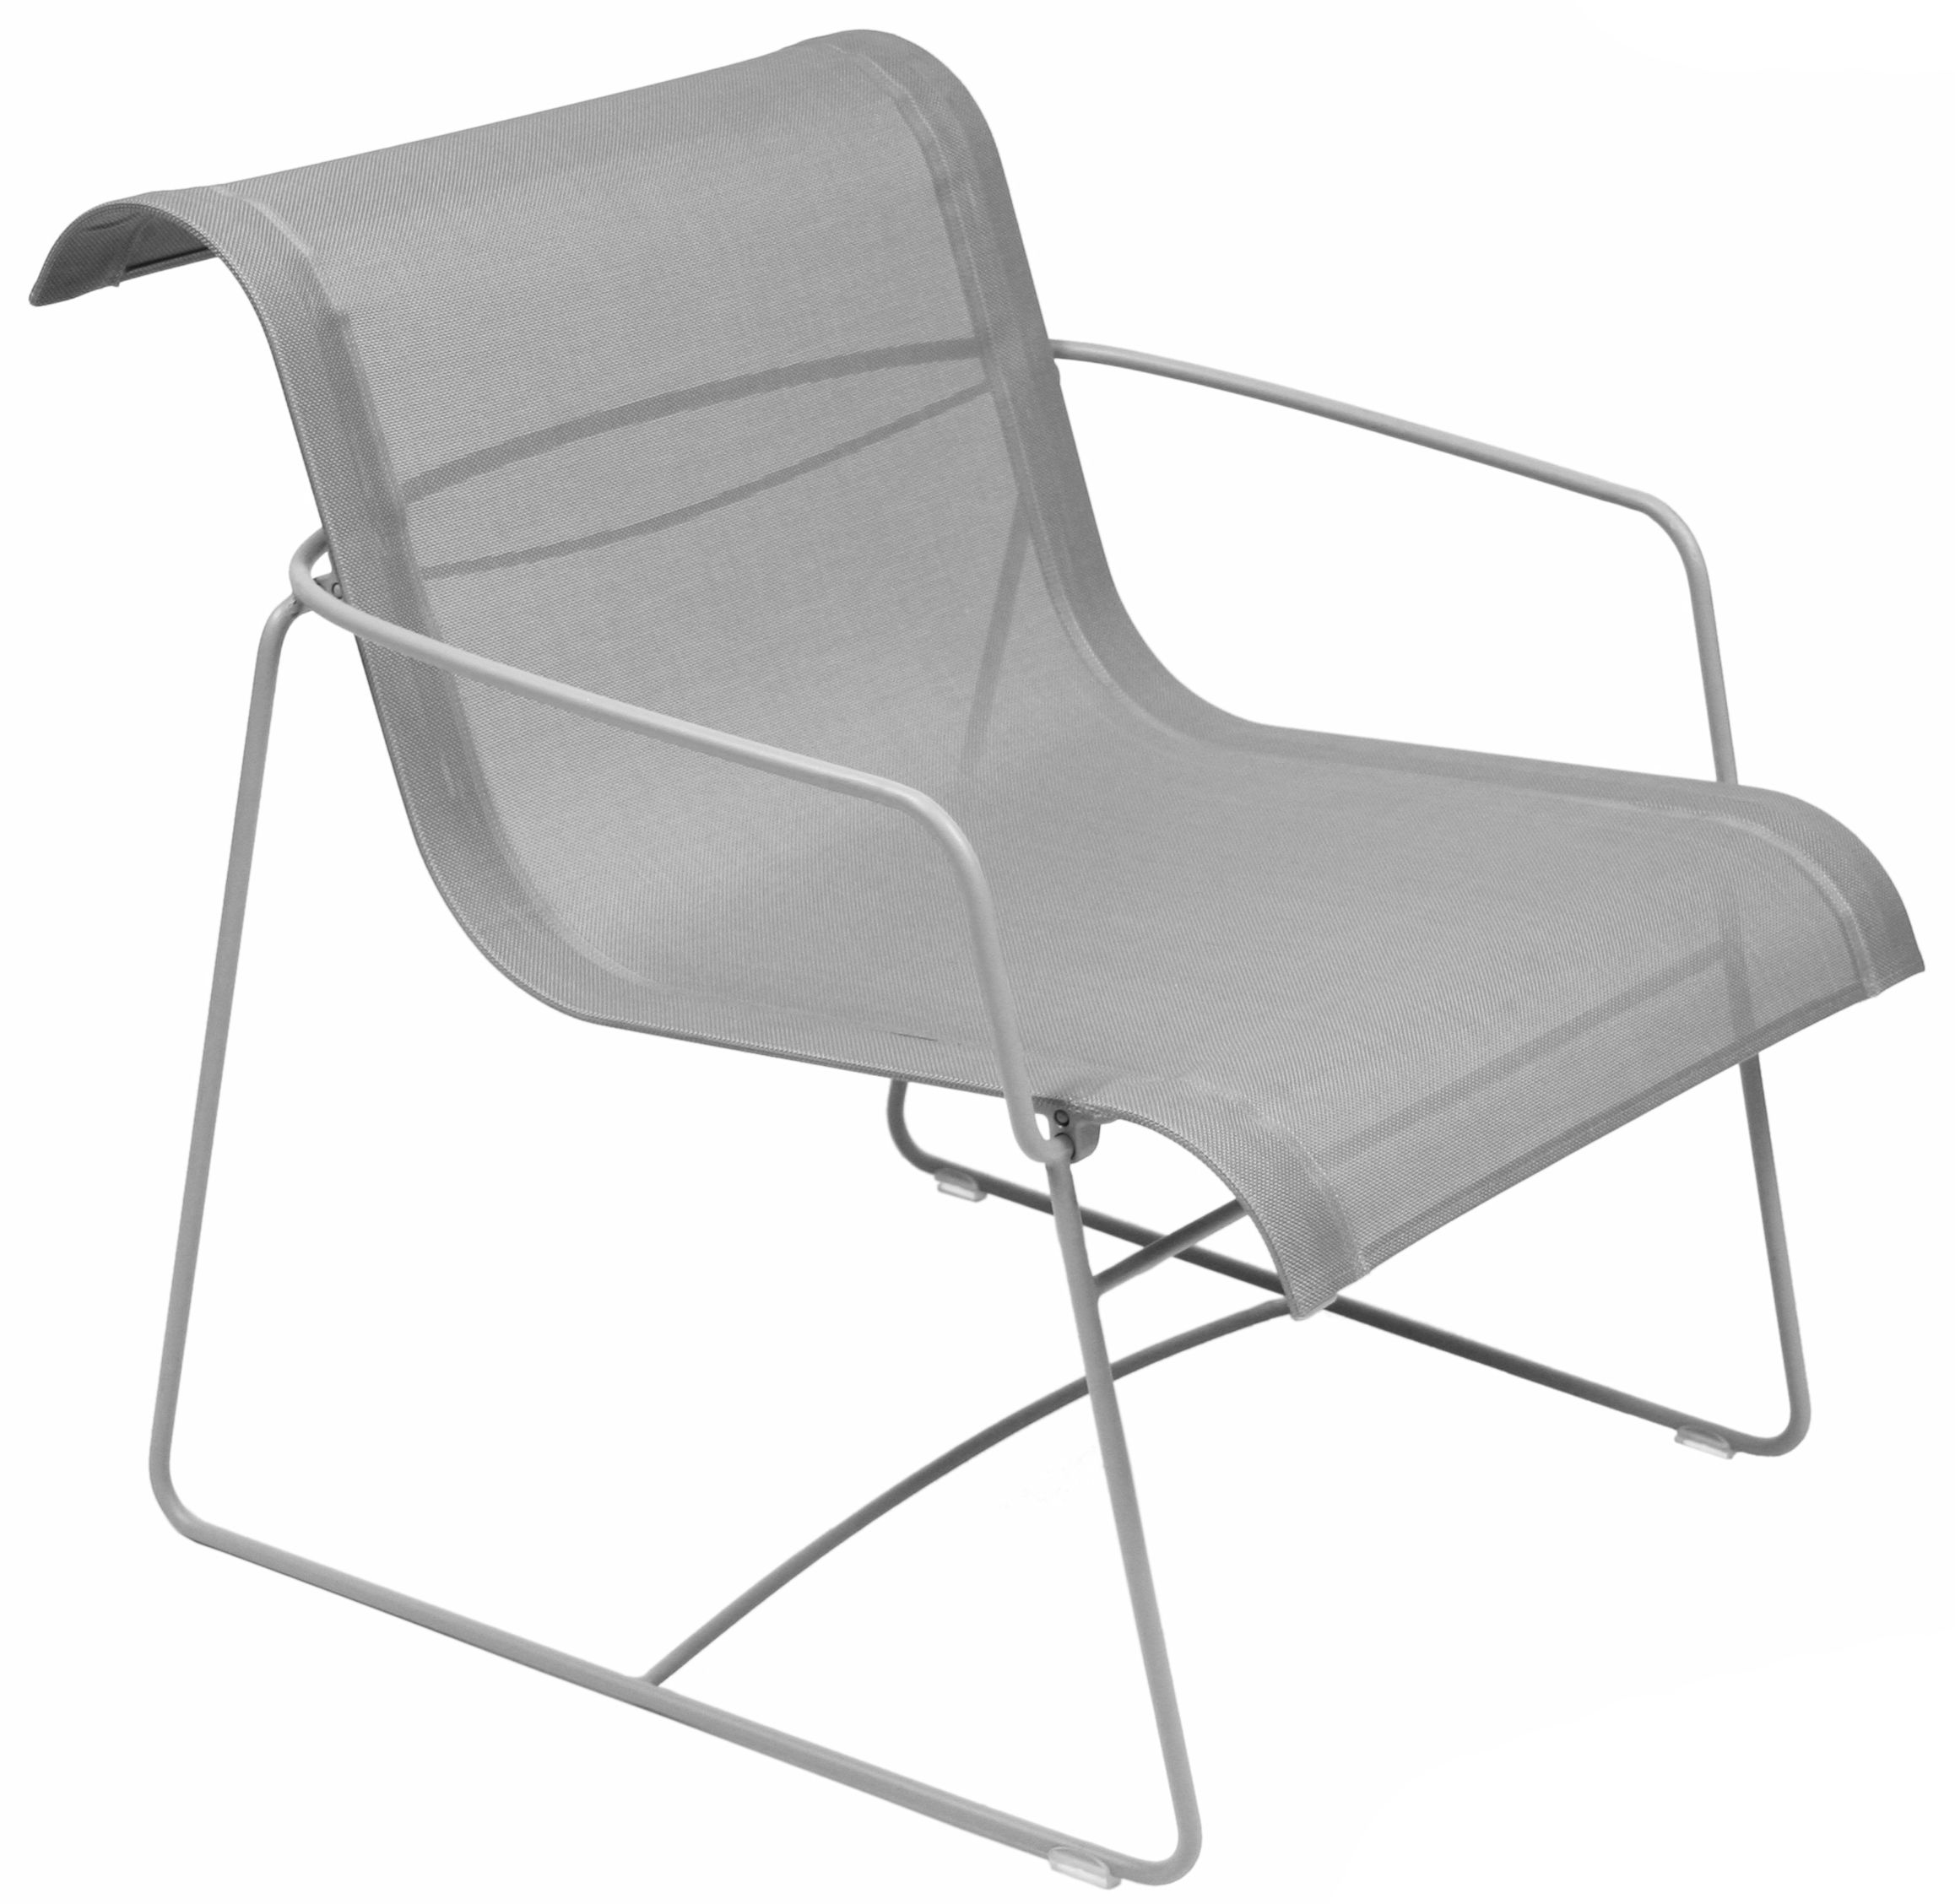 Furniture - Armchairs - Ellipse Low armchair by Fermob - Steel Grey - Cloth, Steel